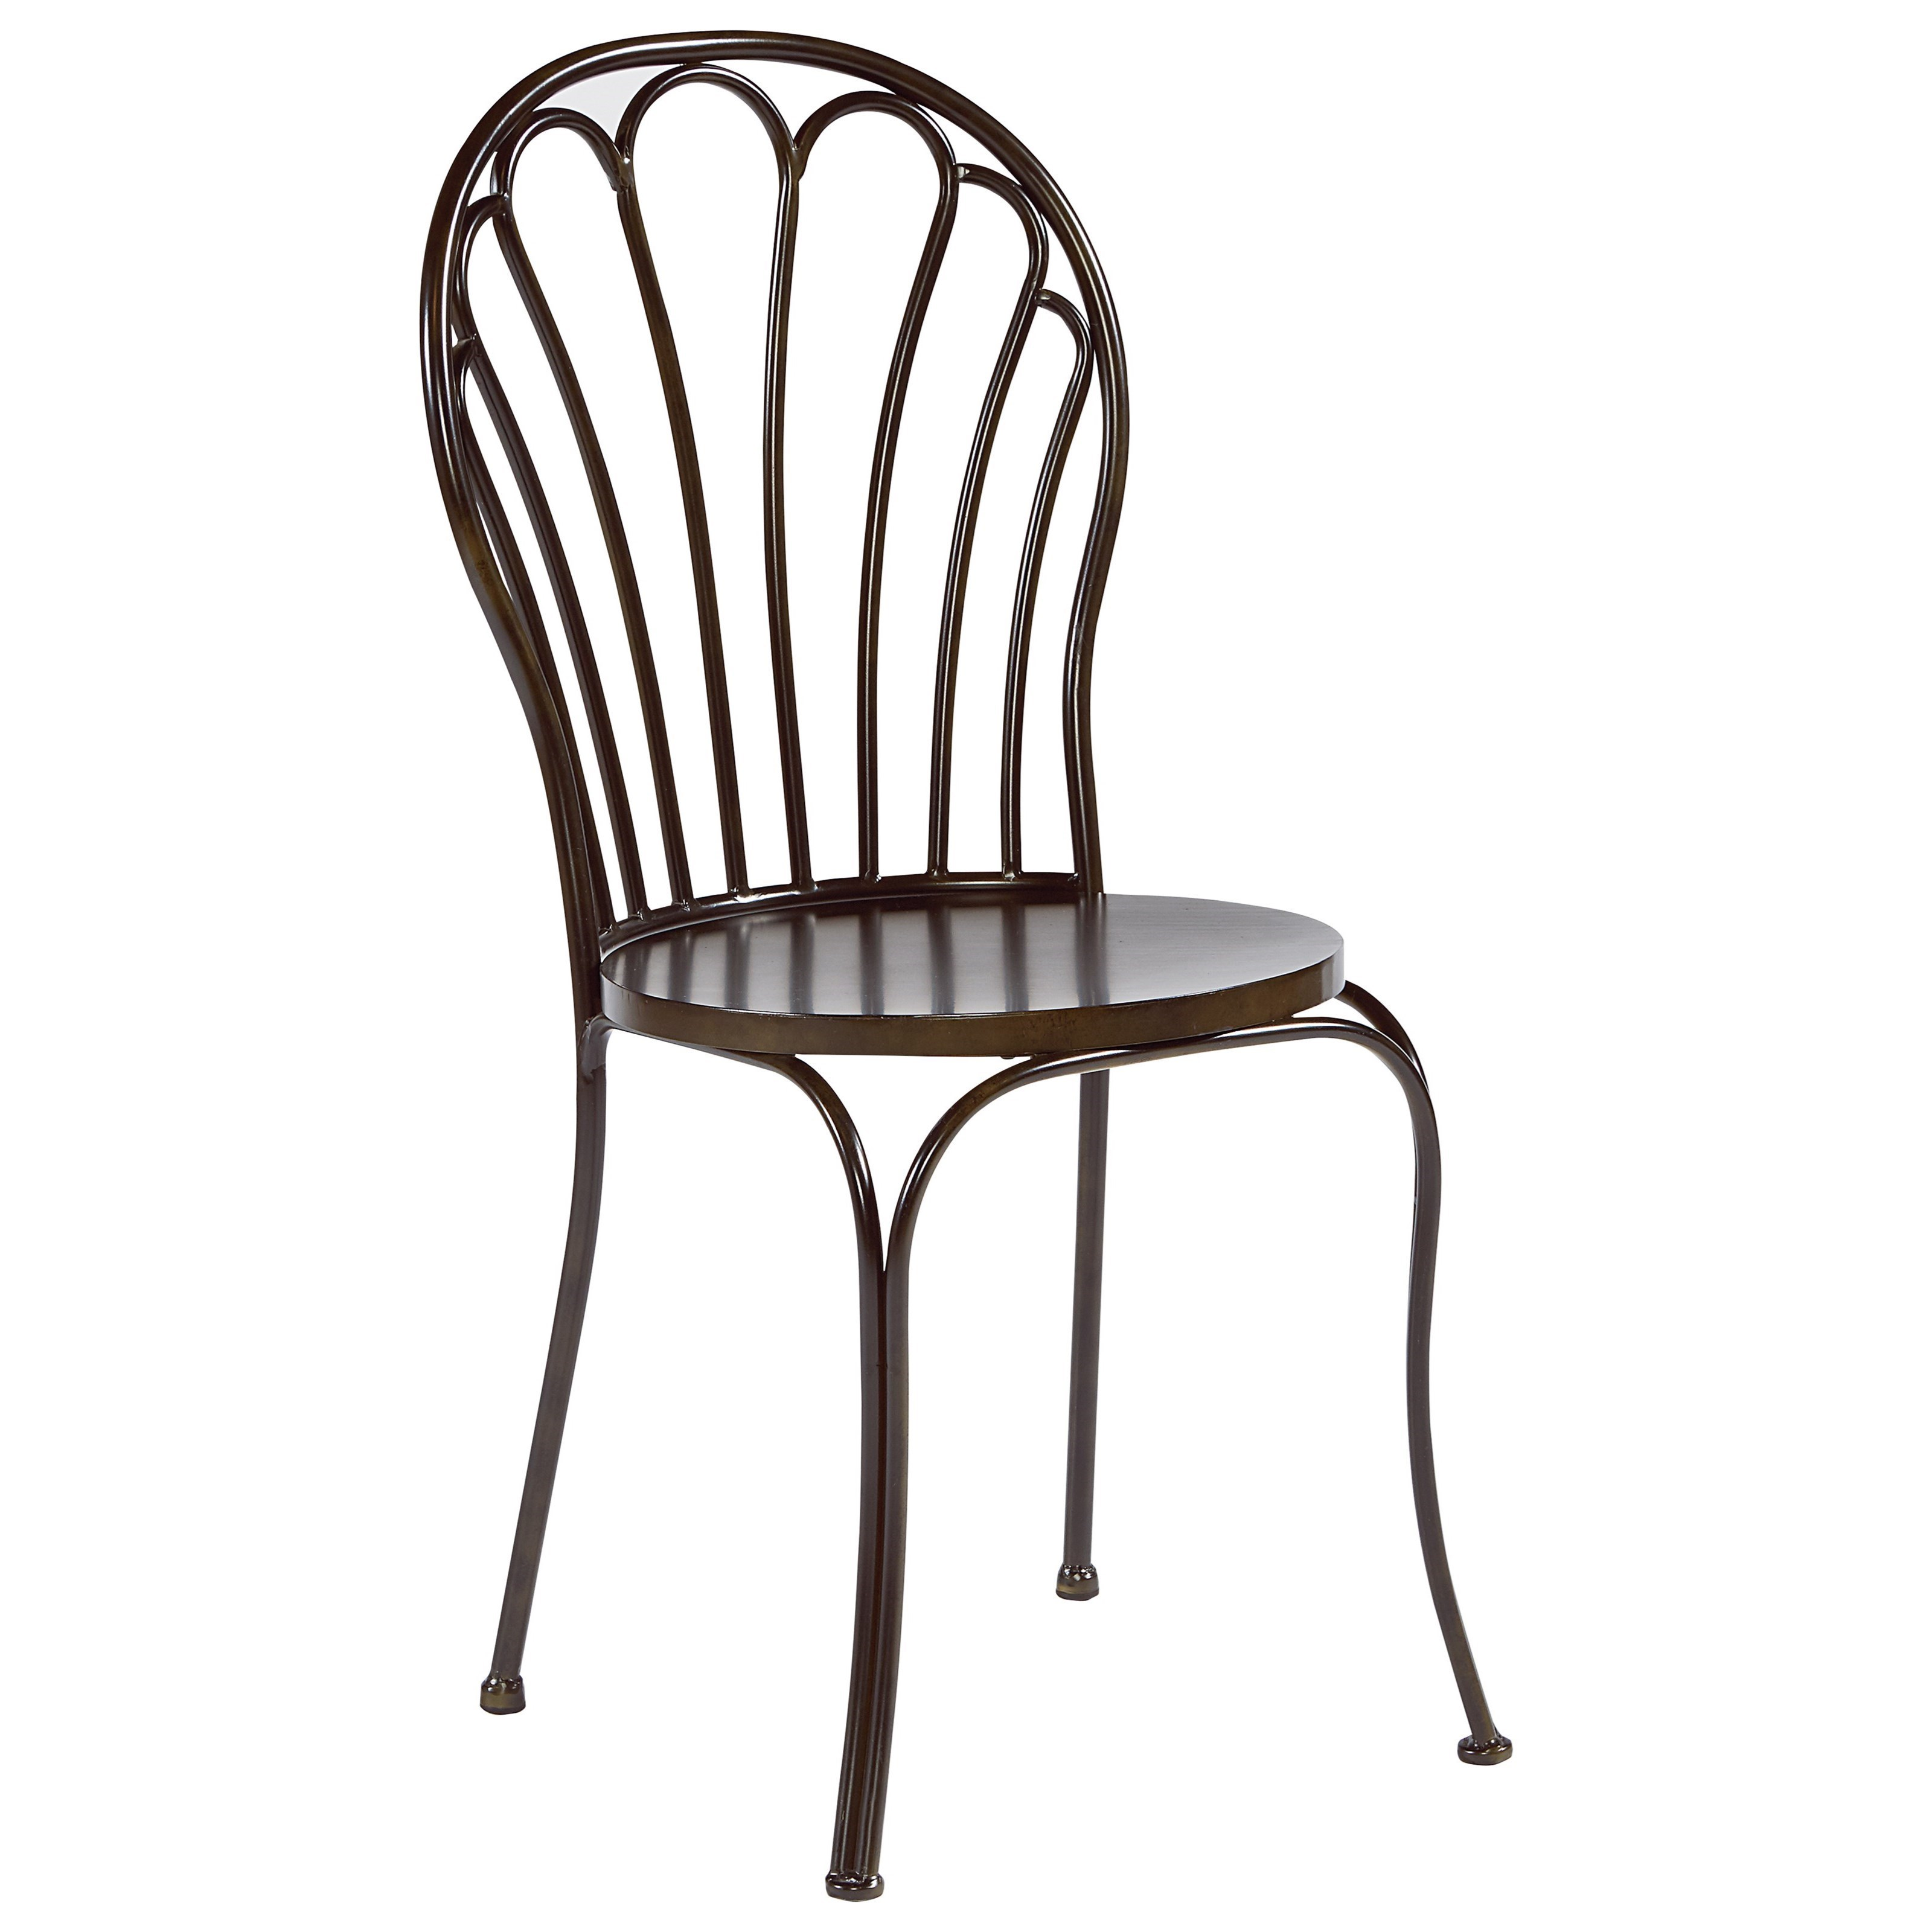 Magnolia Home By Joanna Gaines Primitive Metal Peacock Chair   Hudsonu0027s  Furniture   Dining Side Chairs